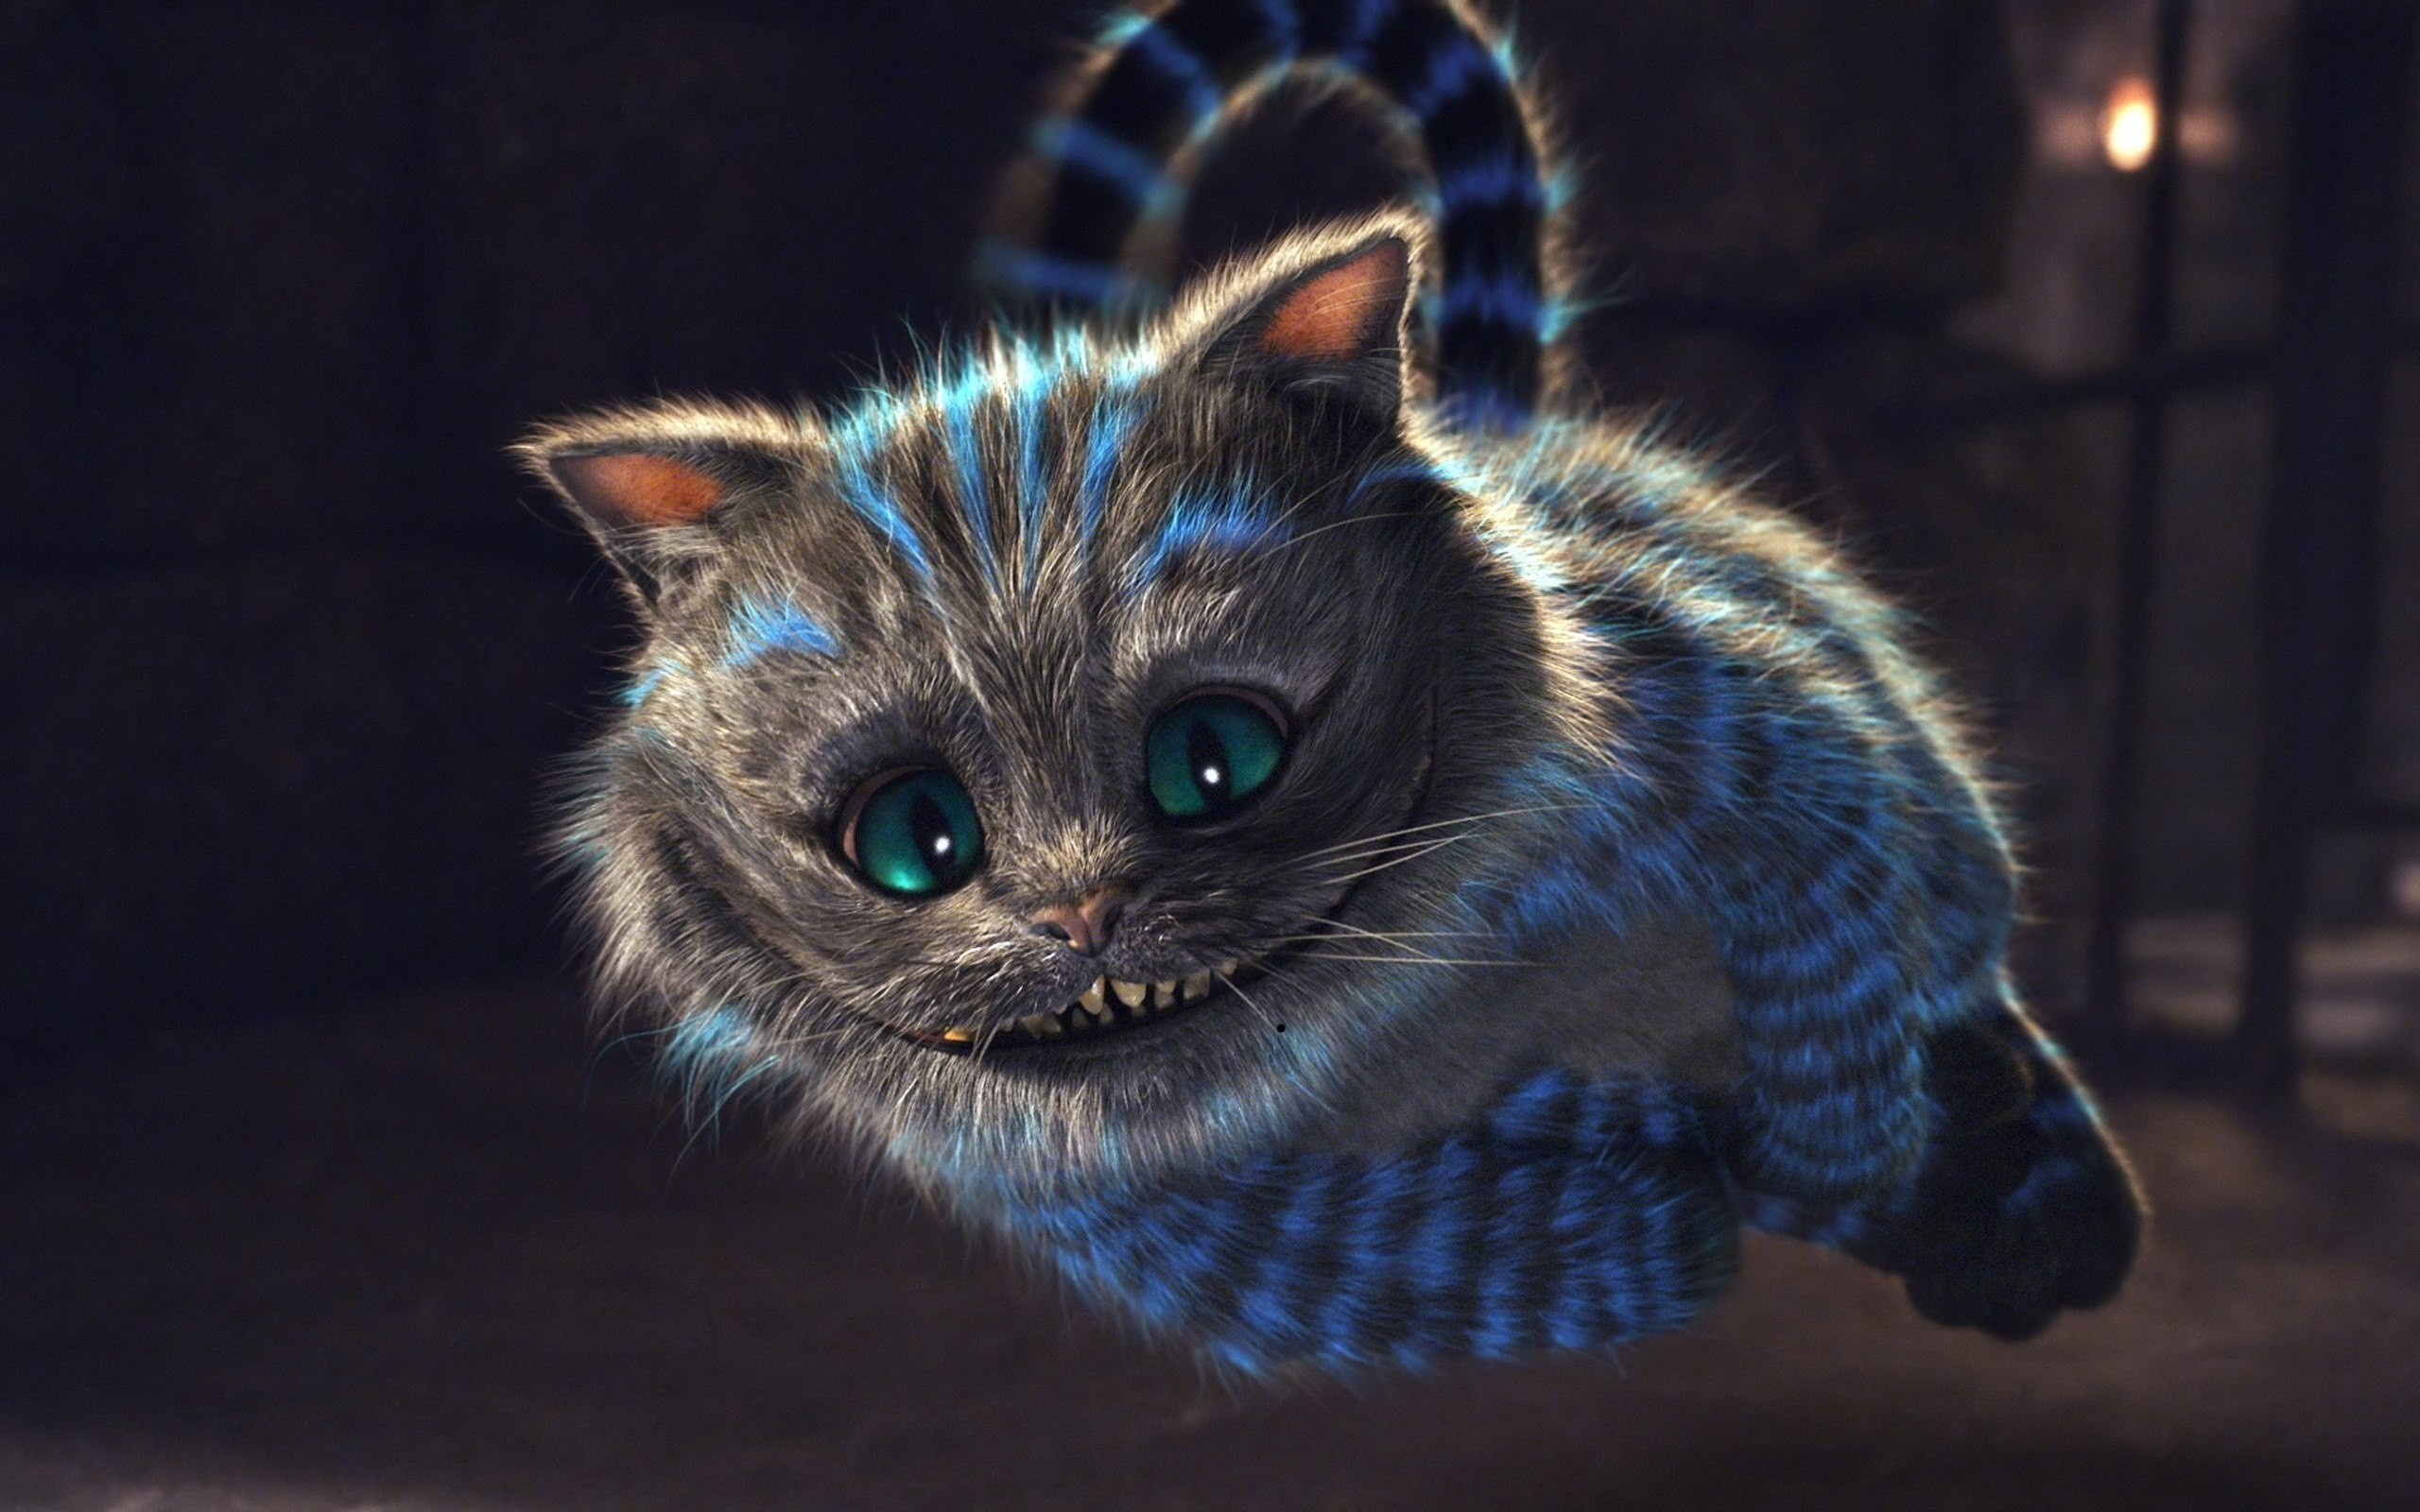 2560x1600 alice in wonderland cat mystical smile wallpaper image